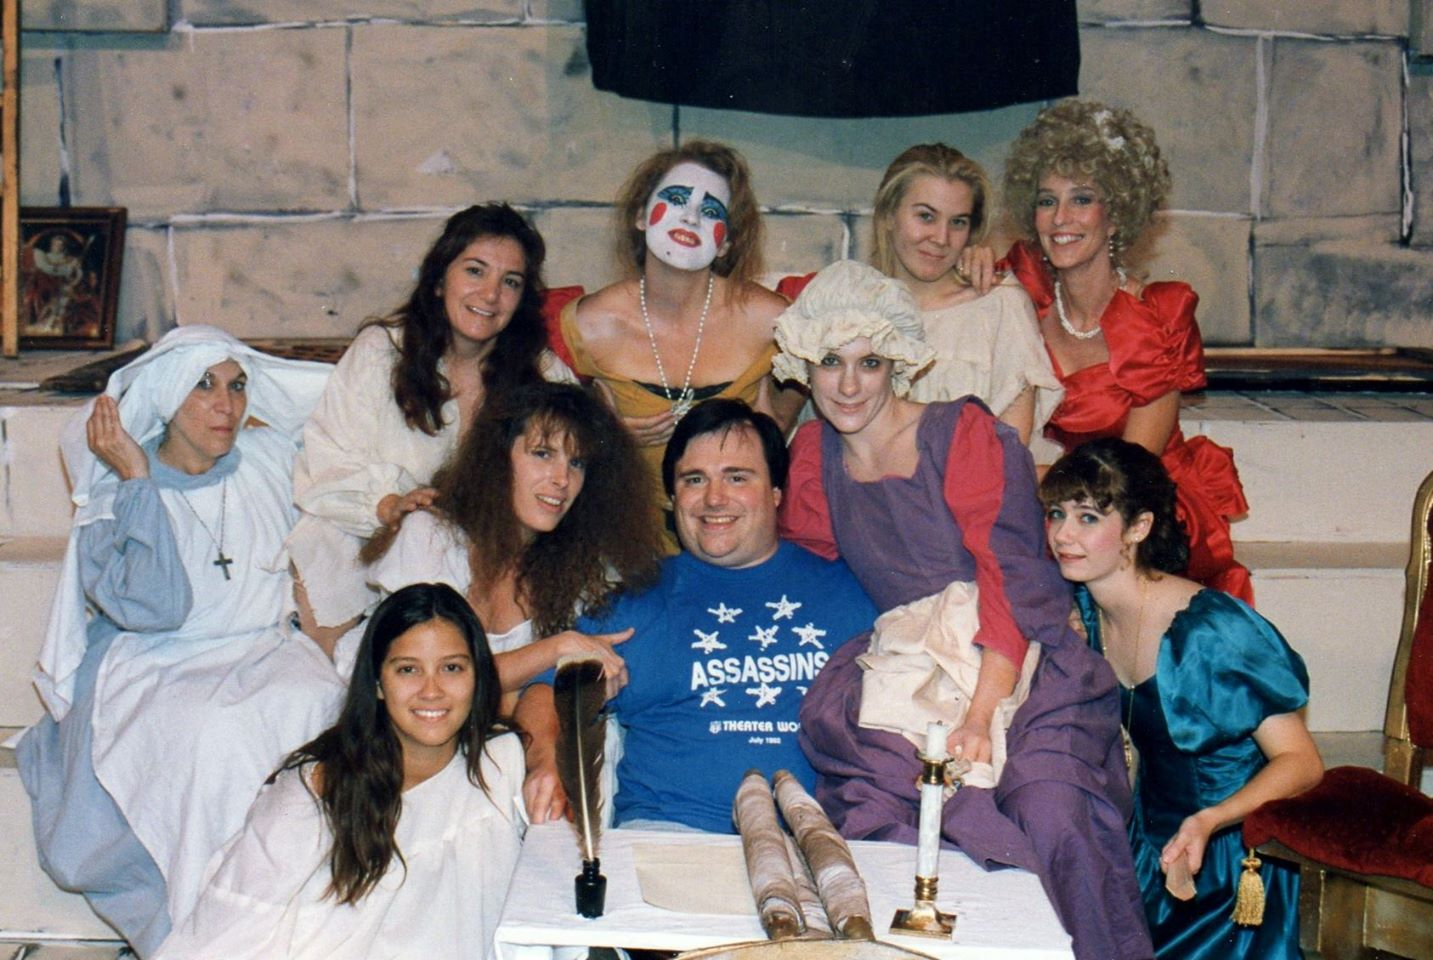 The Persecution and Assassination of Jean Paul Marat as Performed by the Inmates of the Asylum of Charenton Under the Direction of The Marquis de Sade. Theater Works,1992. Among those in the photo are Wes Martin, Robyn Allen, Shawnna Pomeroy and MaryAnn Martin. (Photo credit unknown)